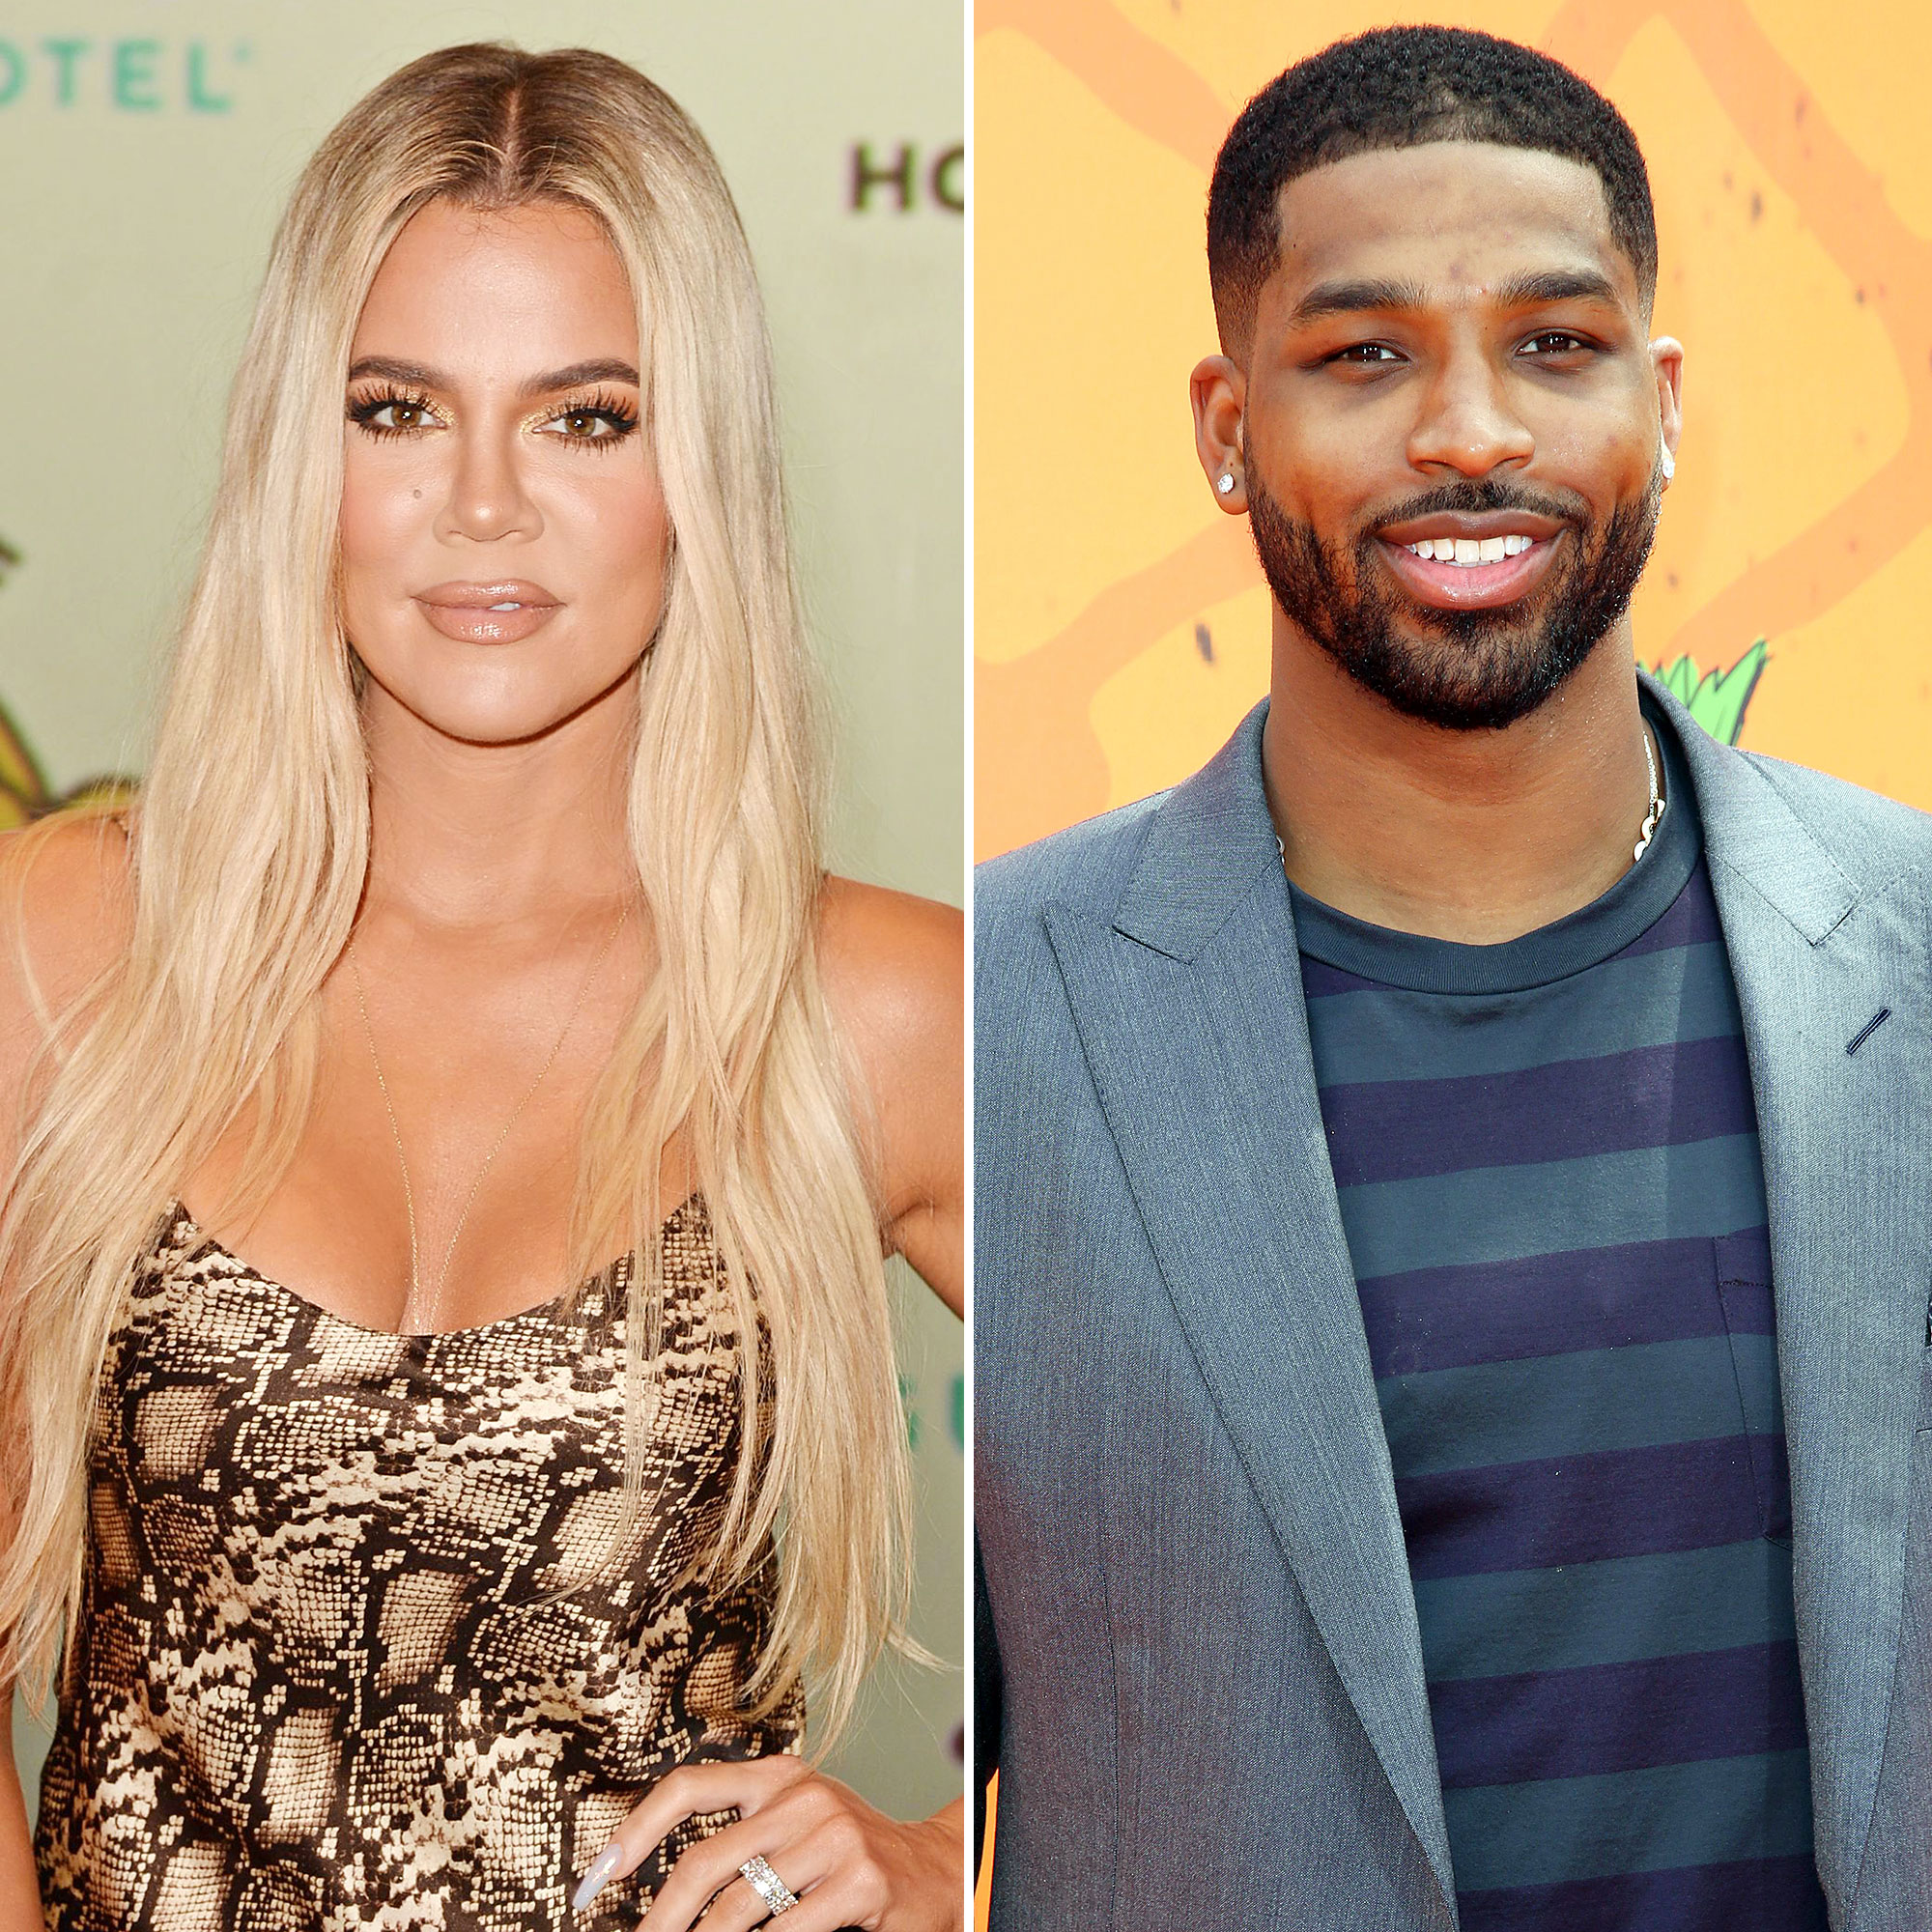 Khloe Kardashian Shares 'Awkward' Moment Watching KUWTK With Ex Tristan Thompson While in Quarantine